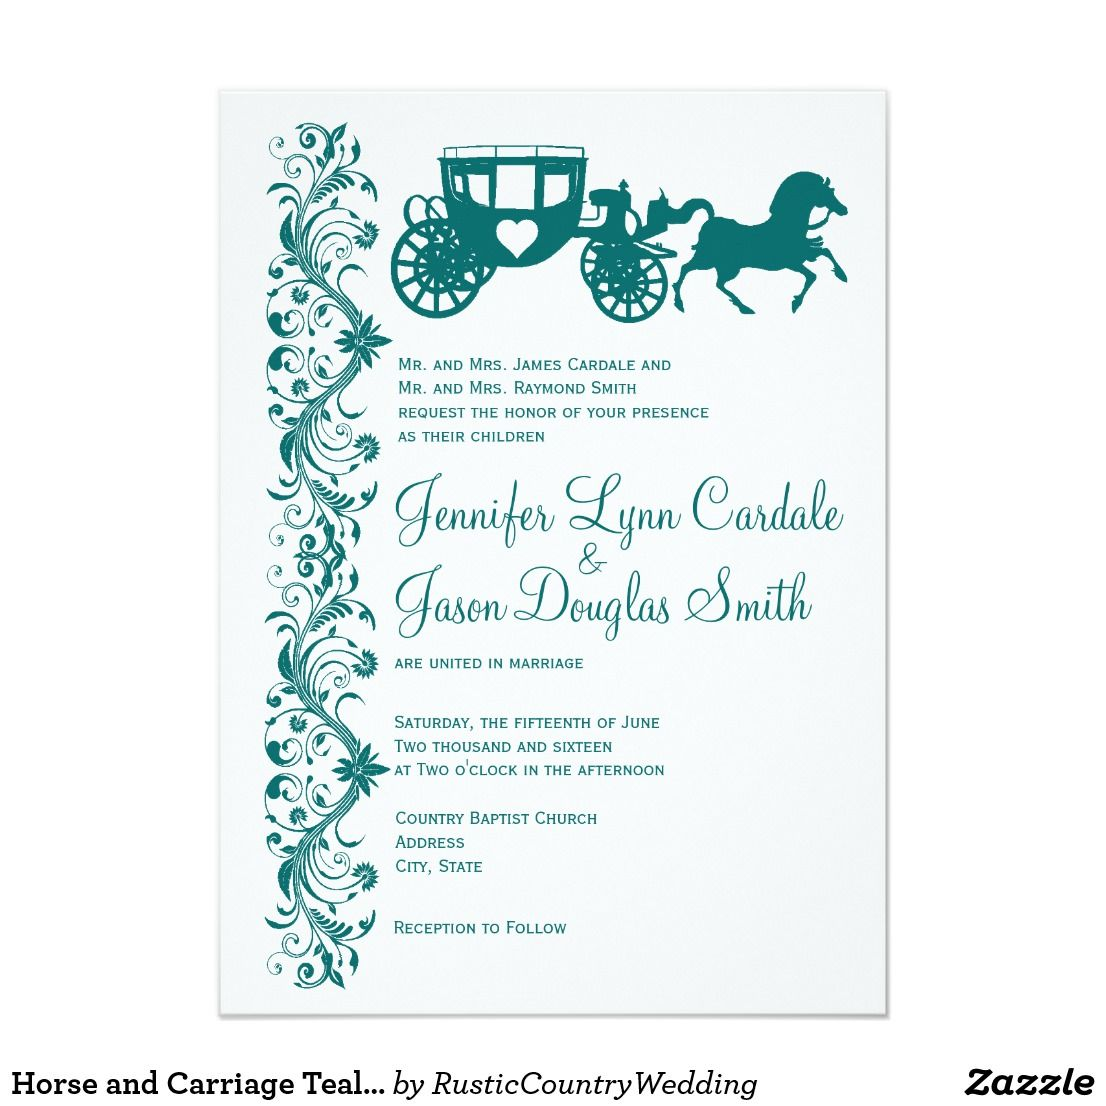 Horse and Carriage Teal Wedding Invitations | Wedding & Bridal ...